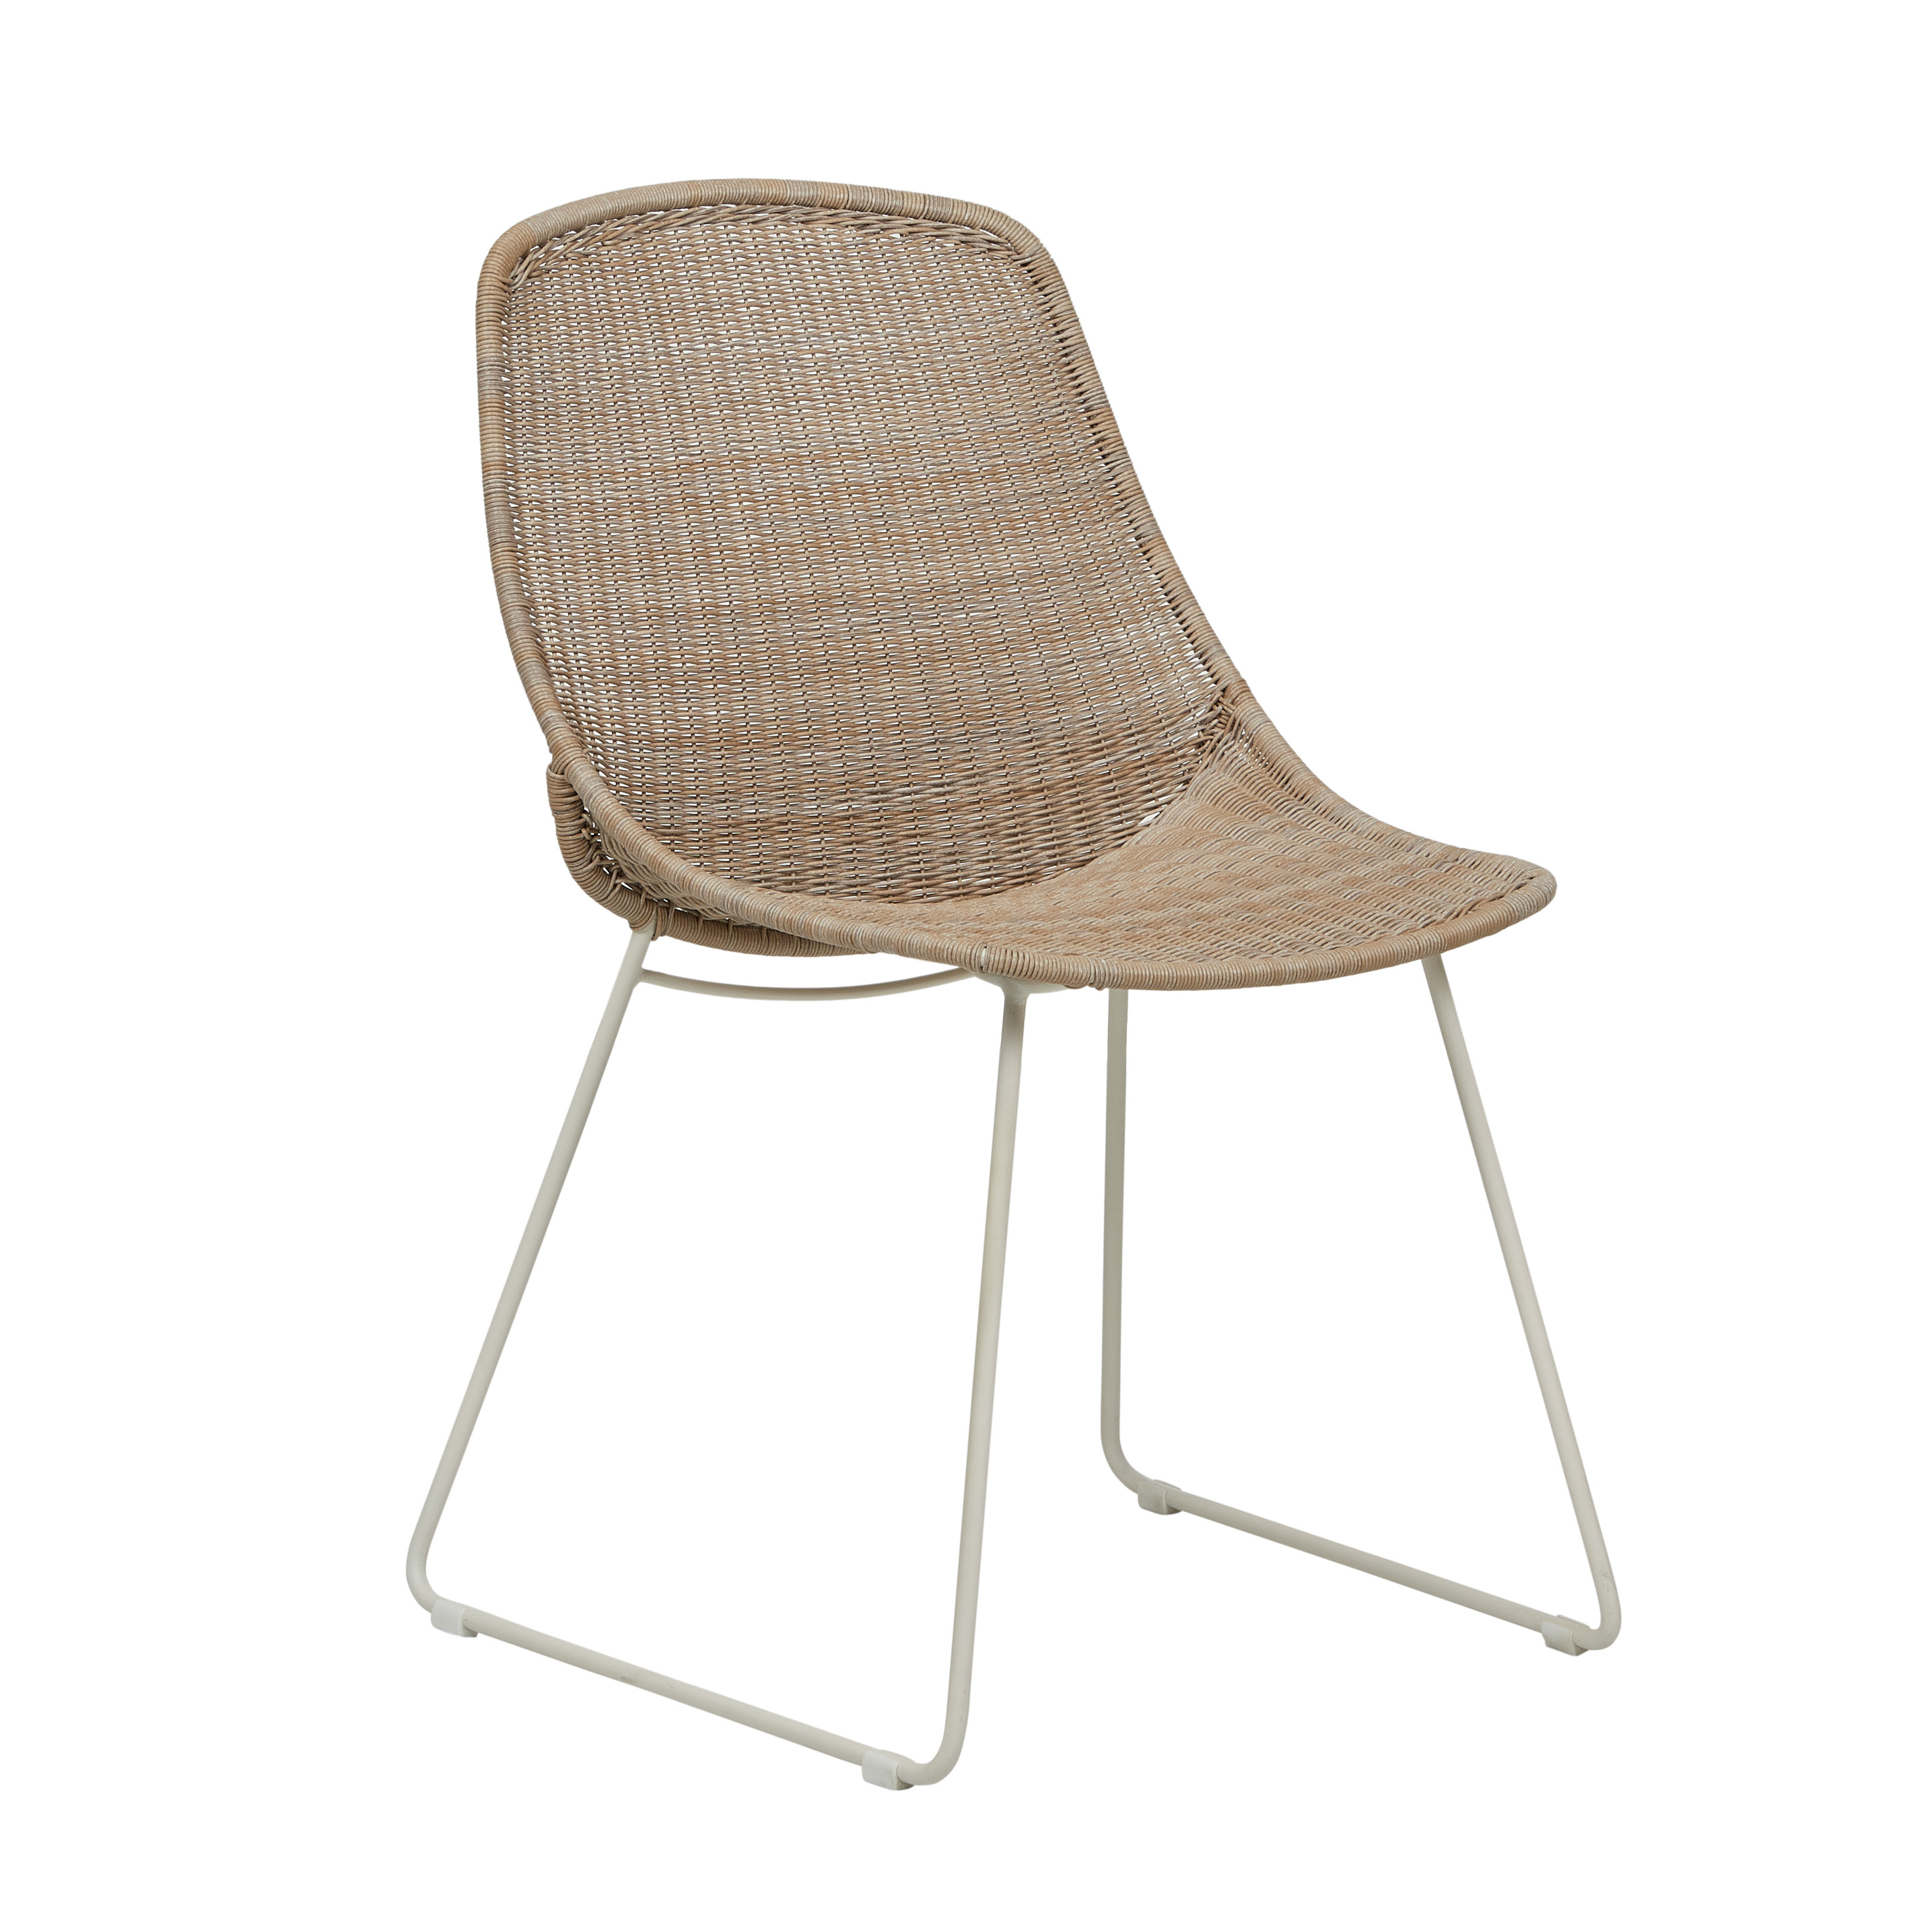 Furniture Hero-Images Dining-Chairs-Benches-and-Stools granada-scoop-closed-weave-01